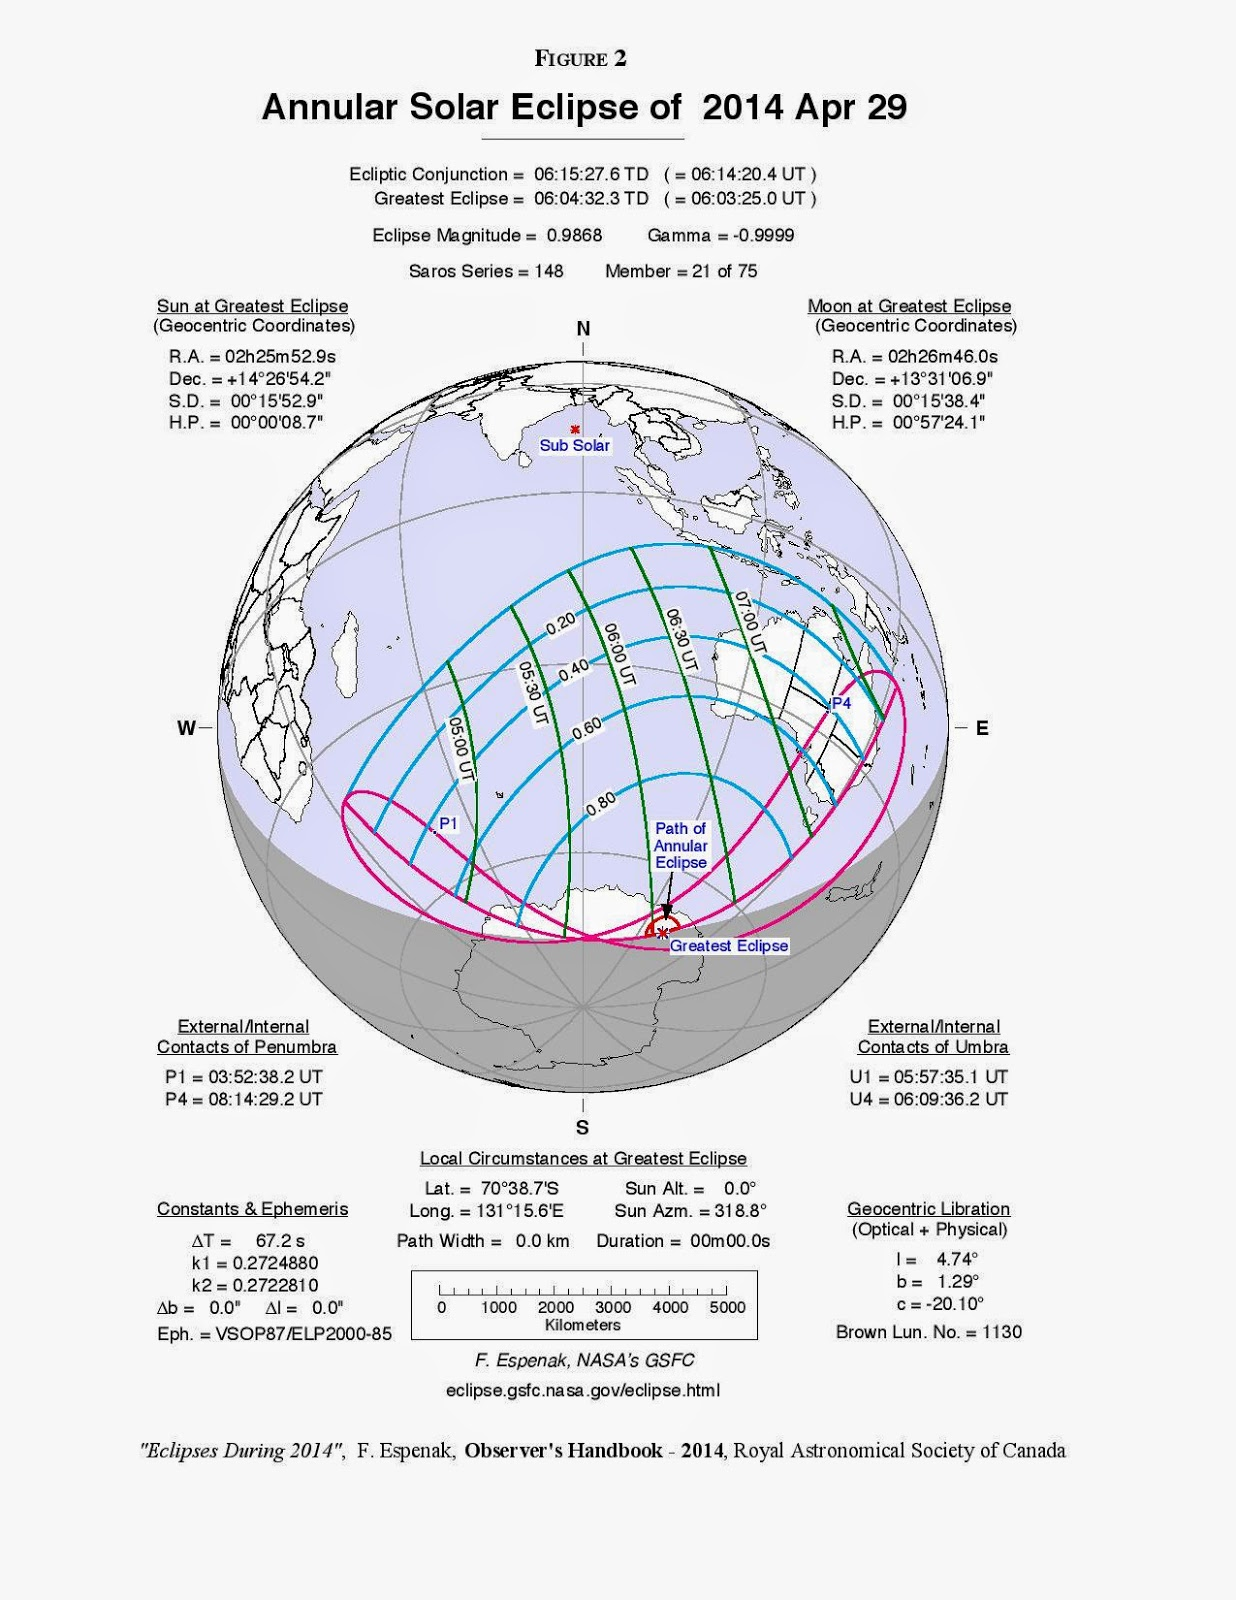 Annular Solar Eclipse 29 April 2014